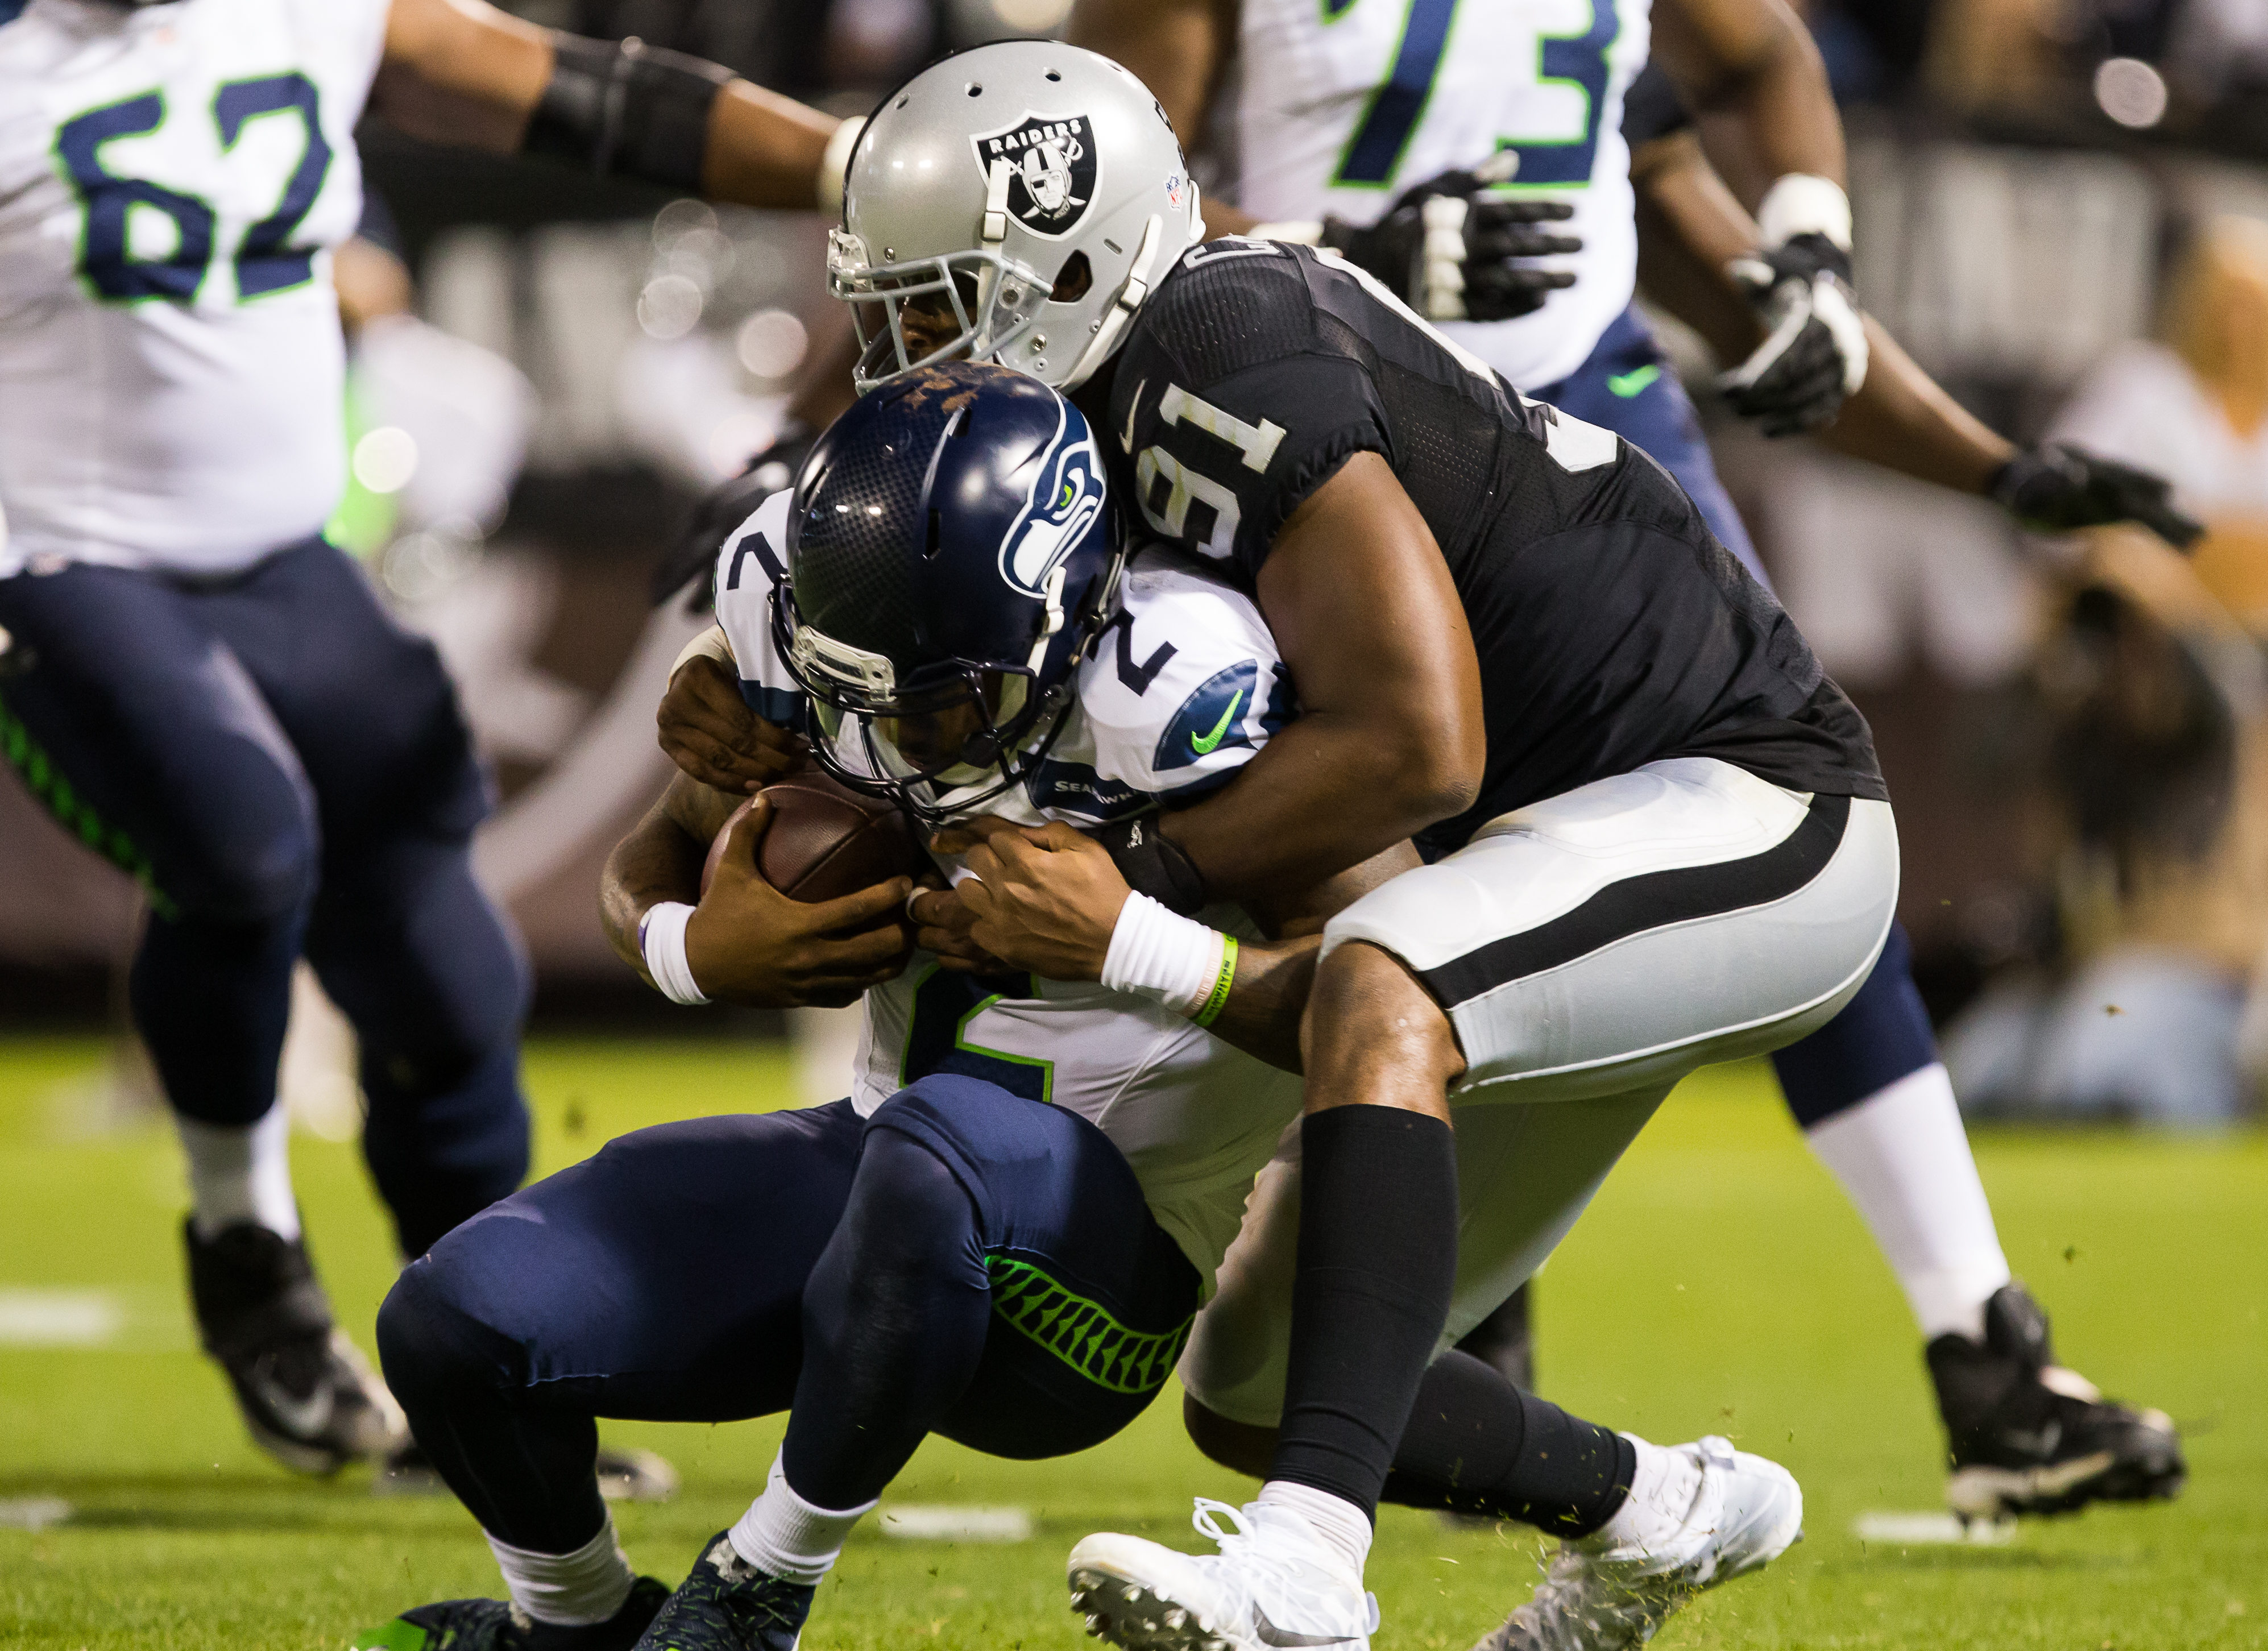 9513673-nfl-preseason-seattle-seahawks-at-oakland-raiders